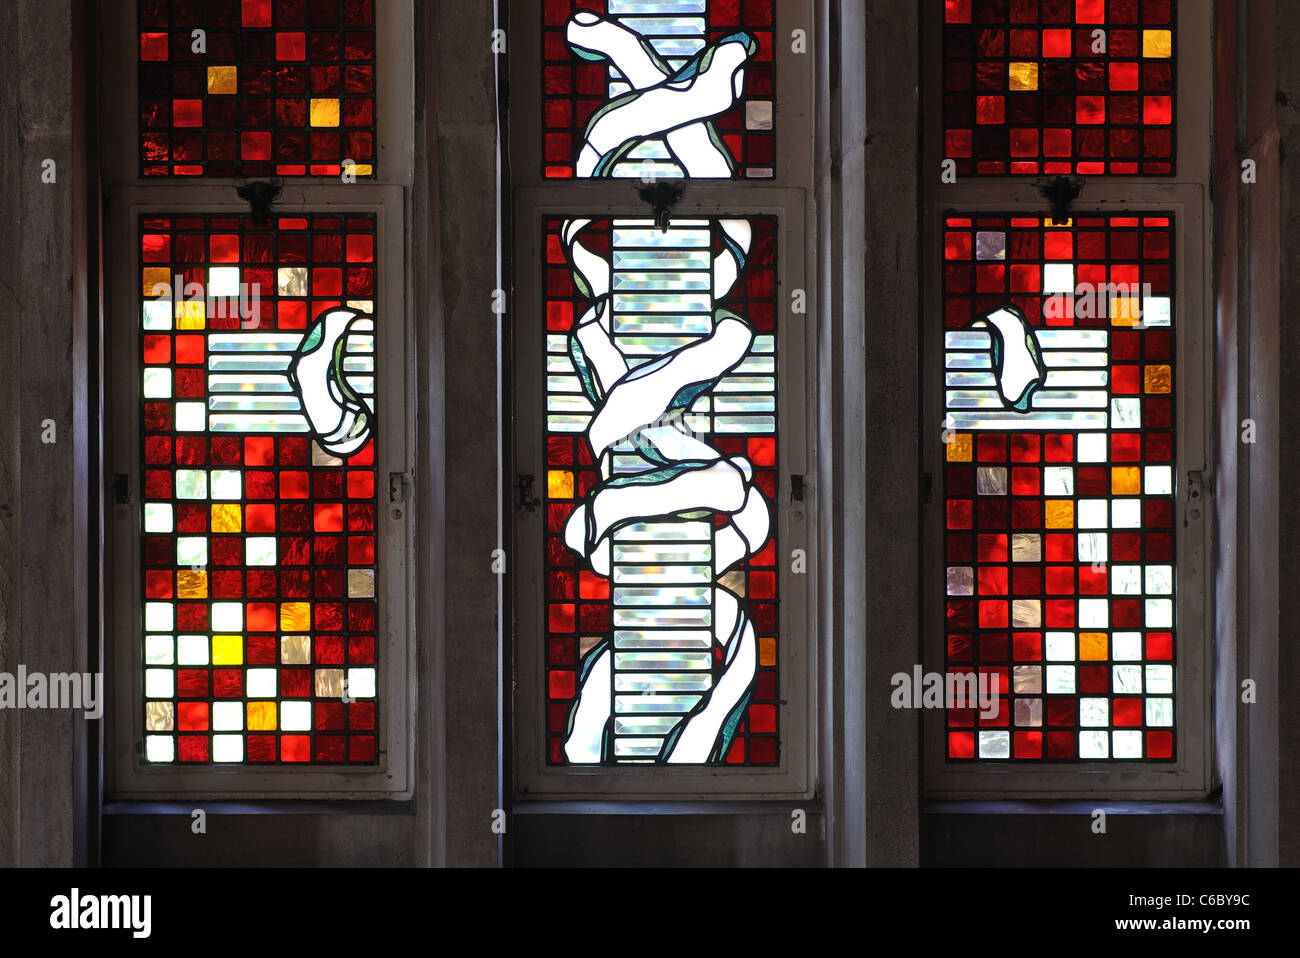 Stained glass in modern extension of St. James the Great Church, Birstall, Leicestershire, England, UK - Stock Image